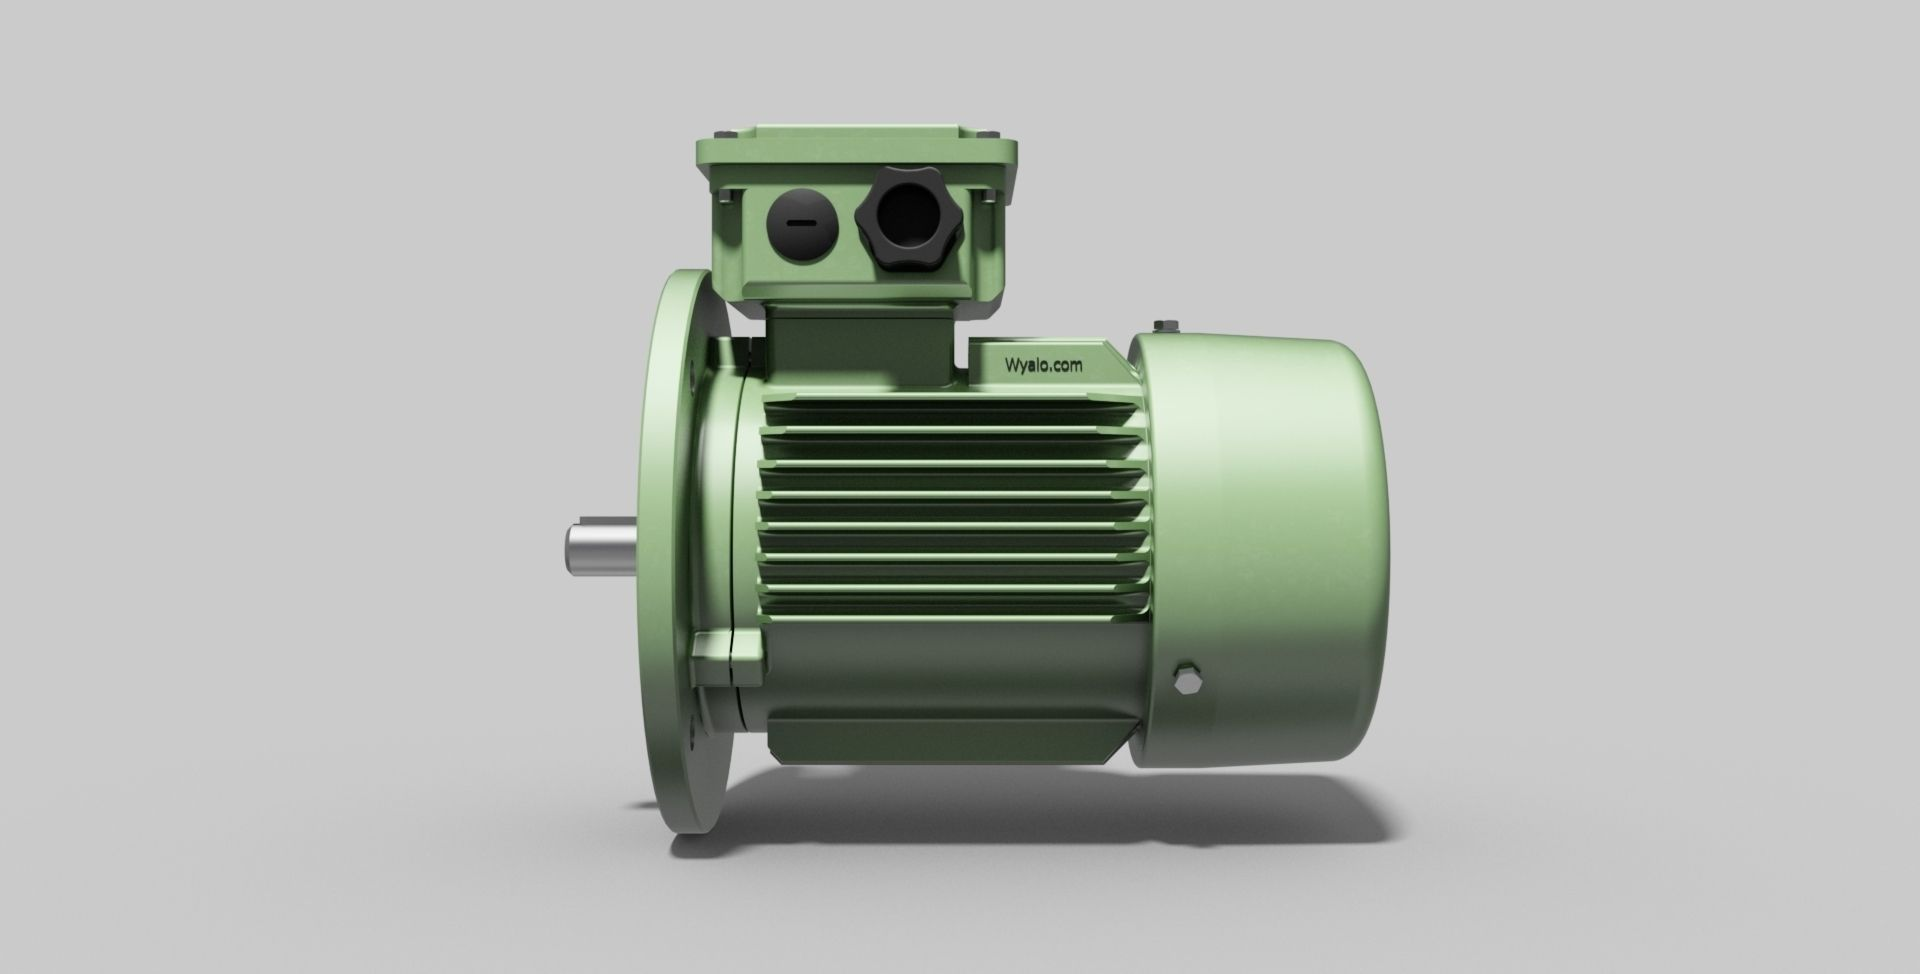 Iec80 B5 Electric Motor Free 3d Model Dwg Ipt Stp